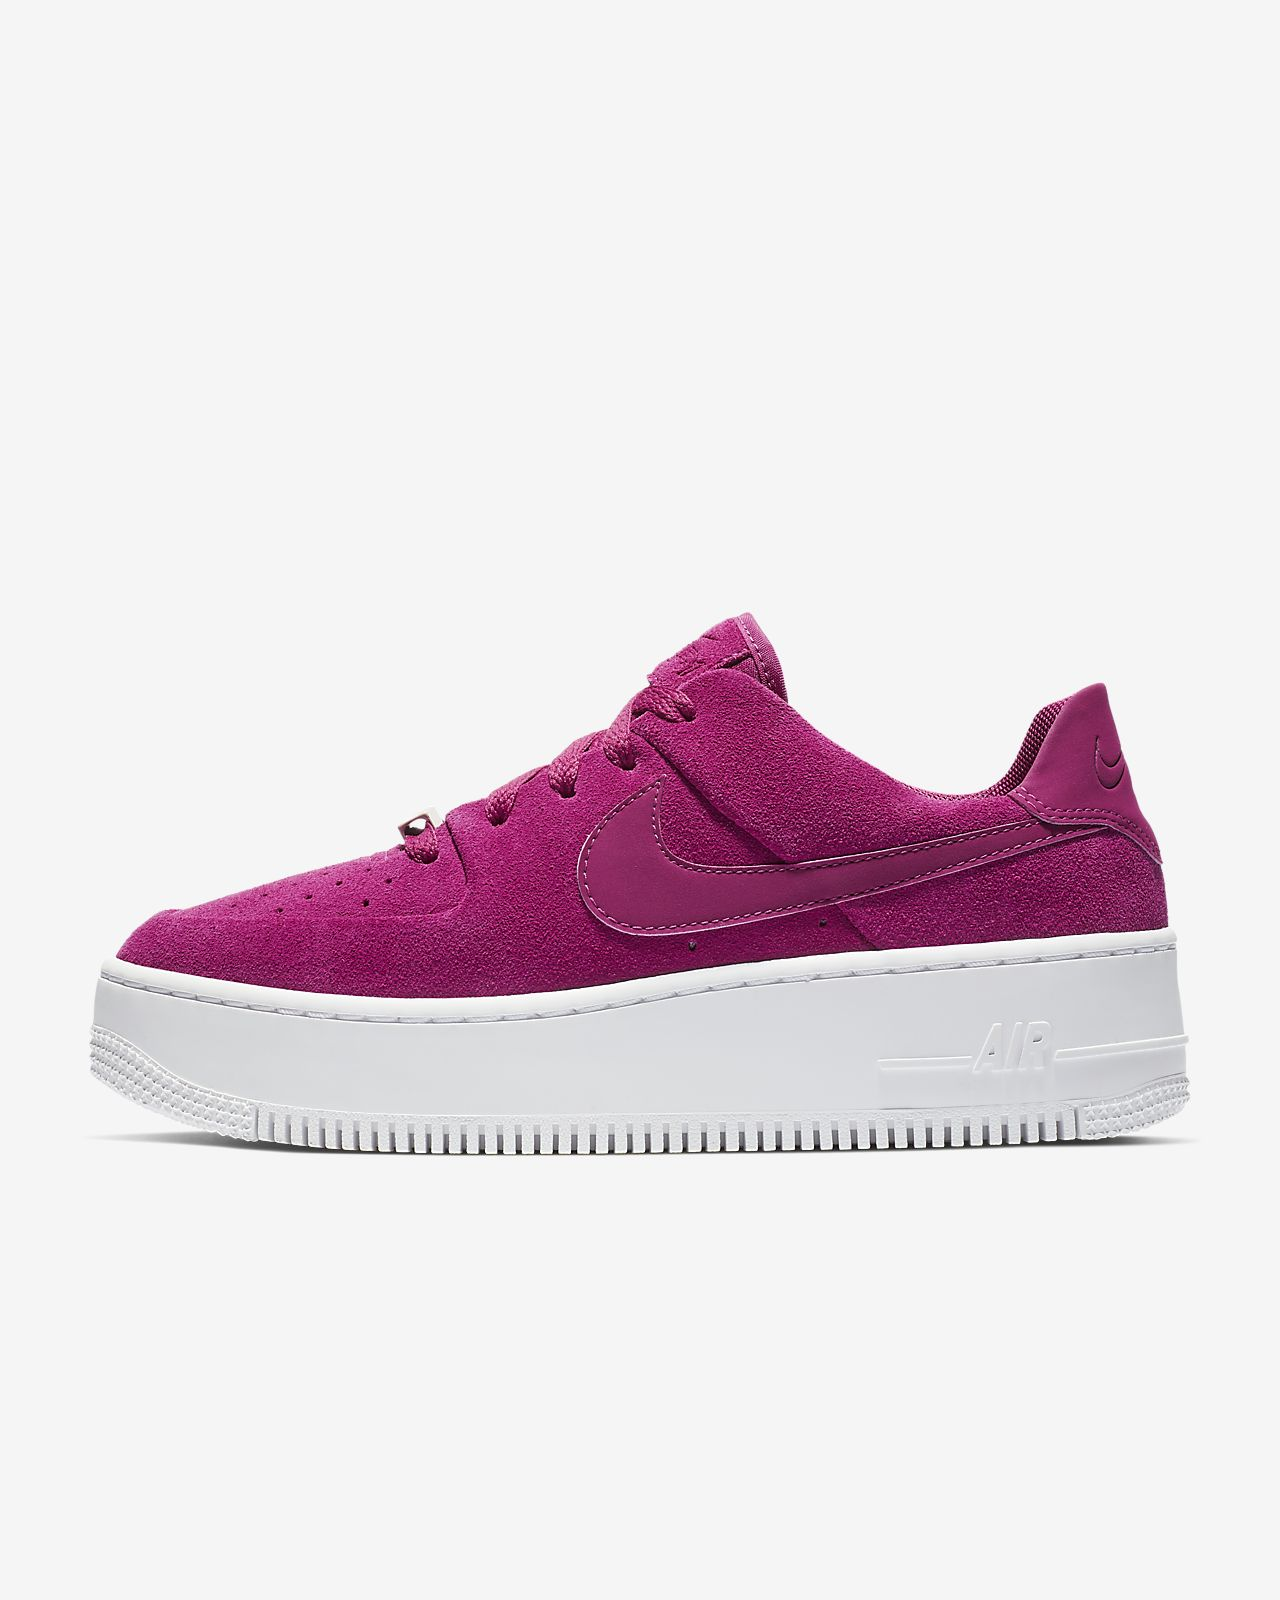 quality design e12d2 2f430 ... Nike Air Force 1 Sage Low Womens Shoe